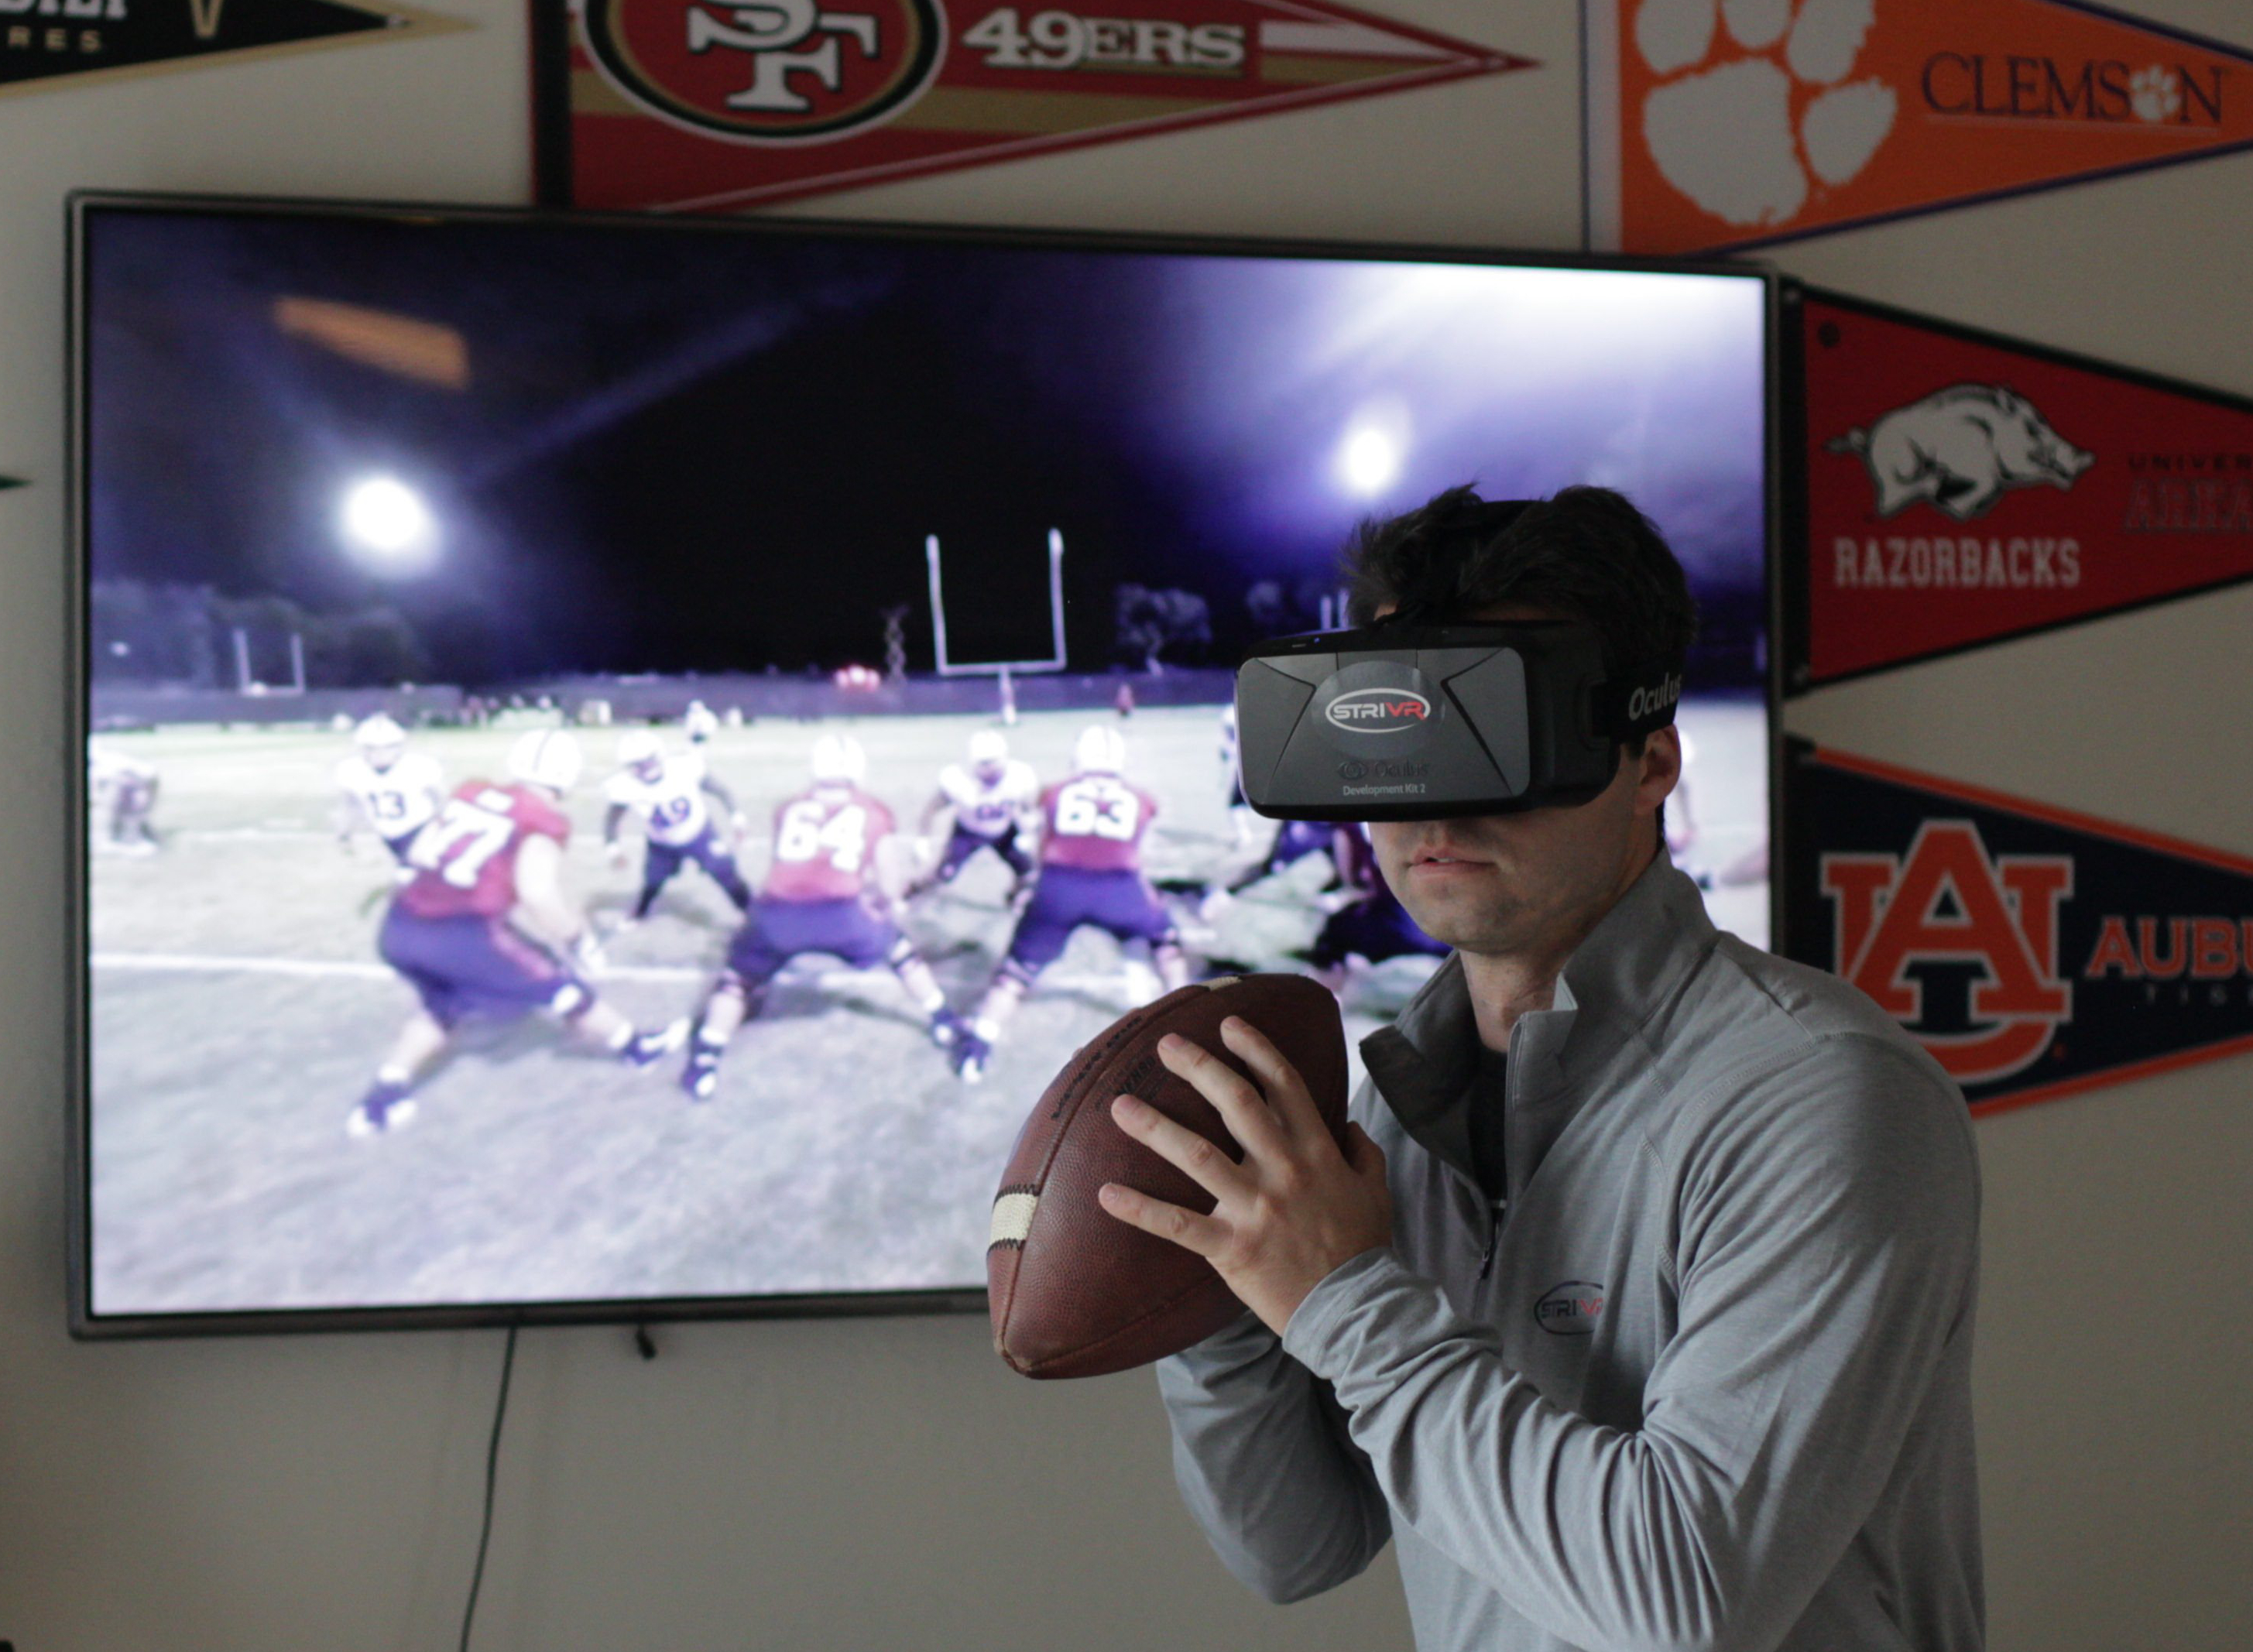 StriVR technology brings every position on the football field to life through 360-degree video